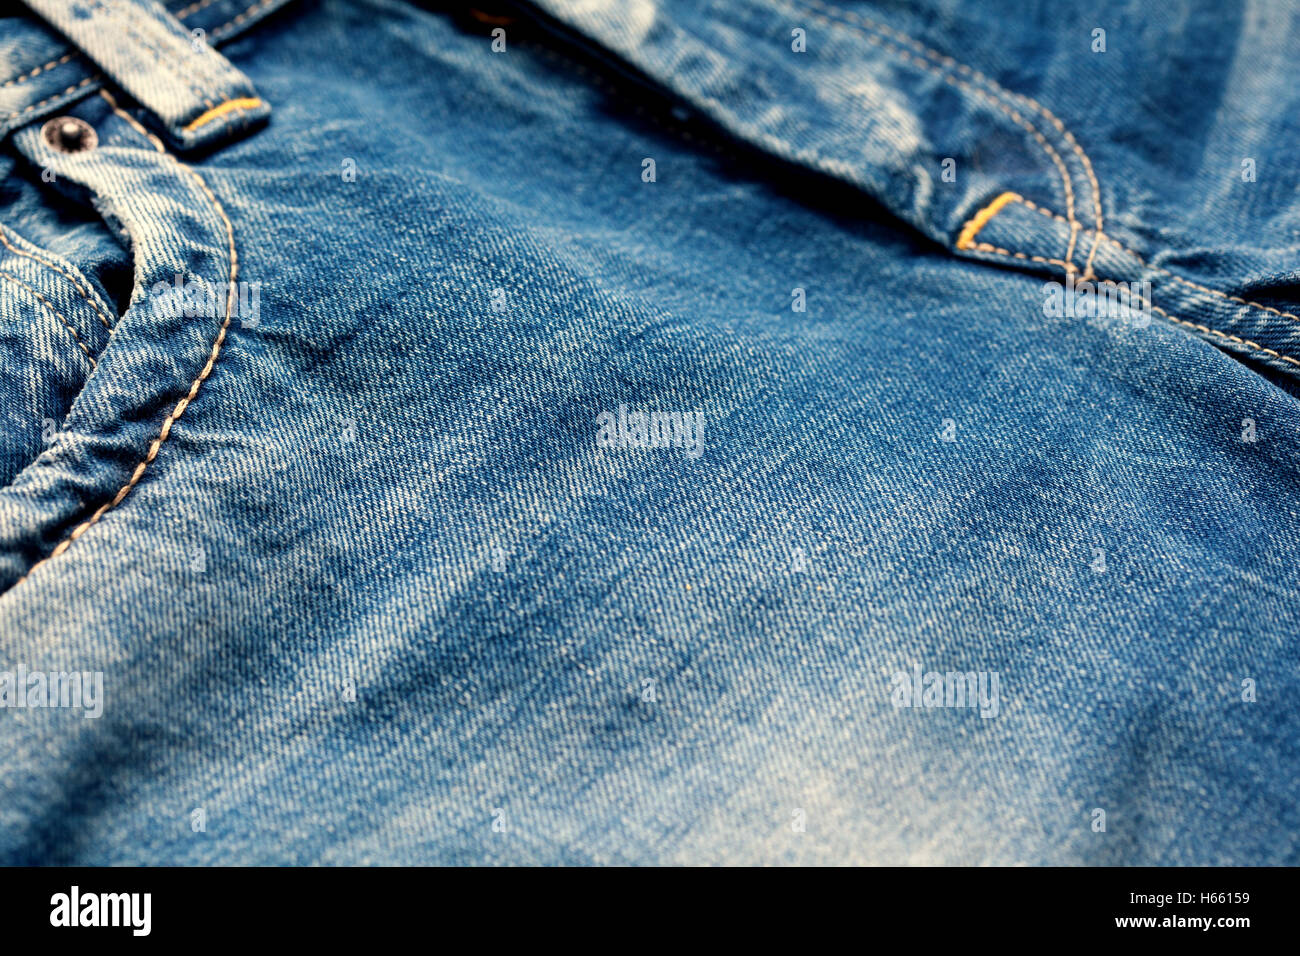 Close-up of denim jeans Photo Stock